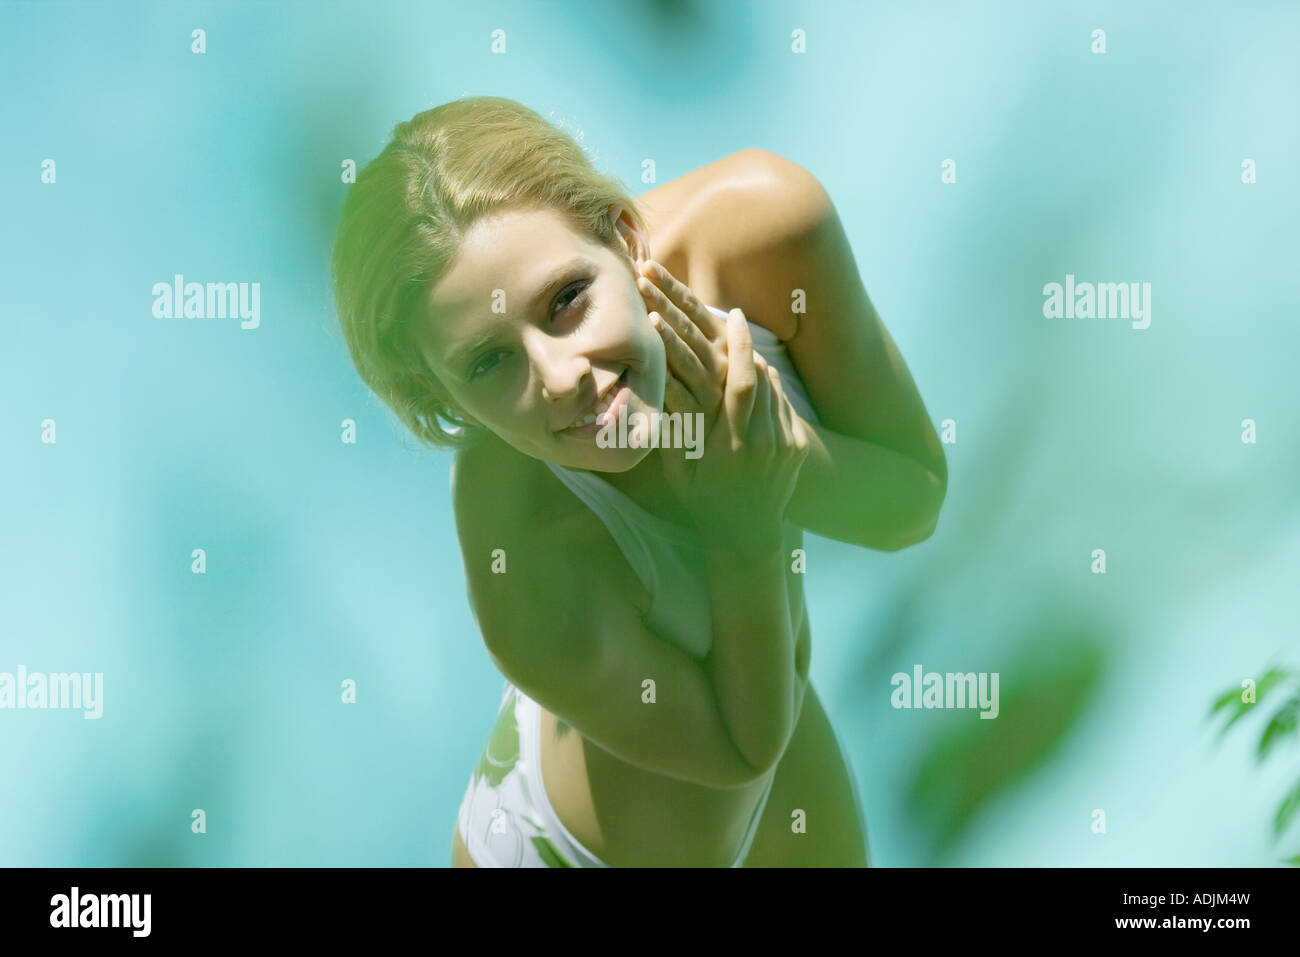 Young woman standing in bikini, high angle view, blur in foreground - Stock Image